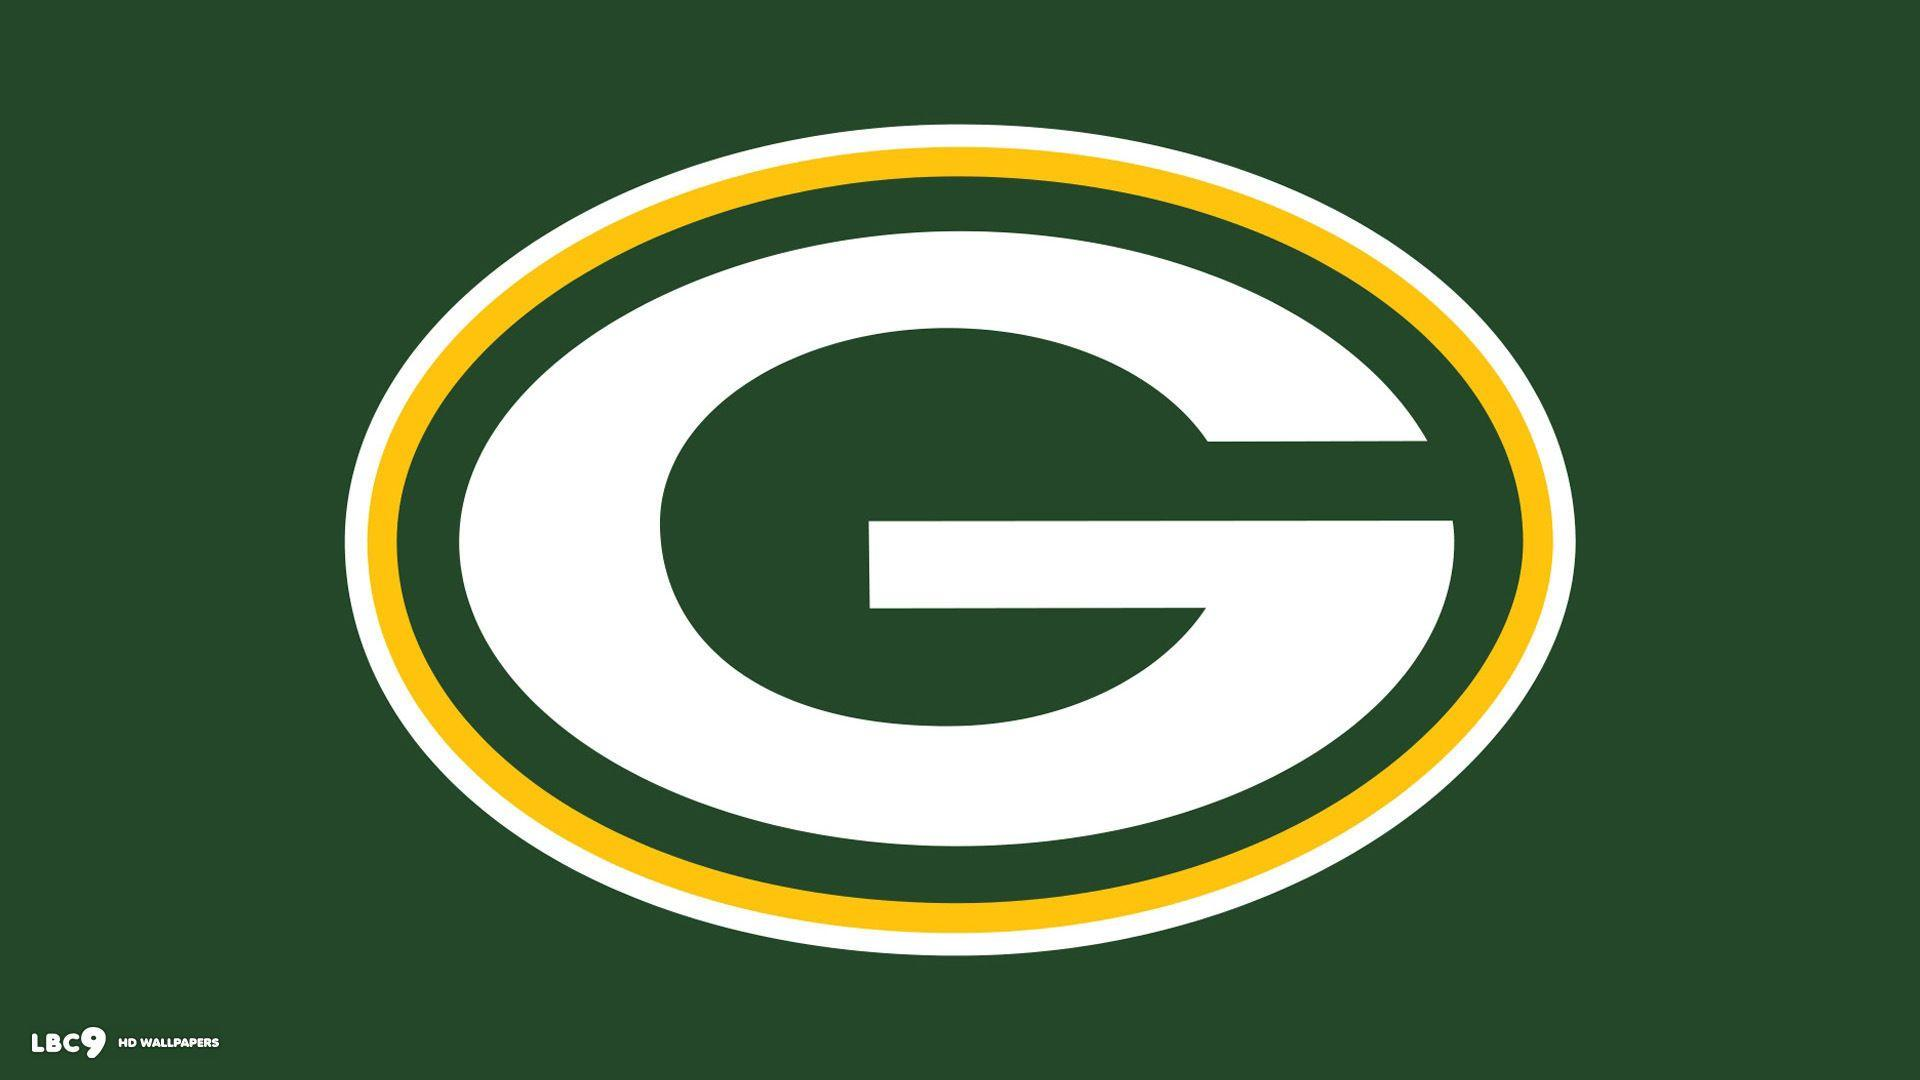 Green Bay Packers Wallpapers 1920x1080